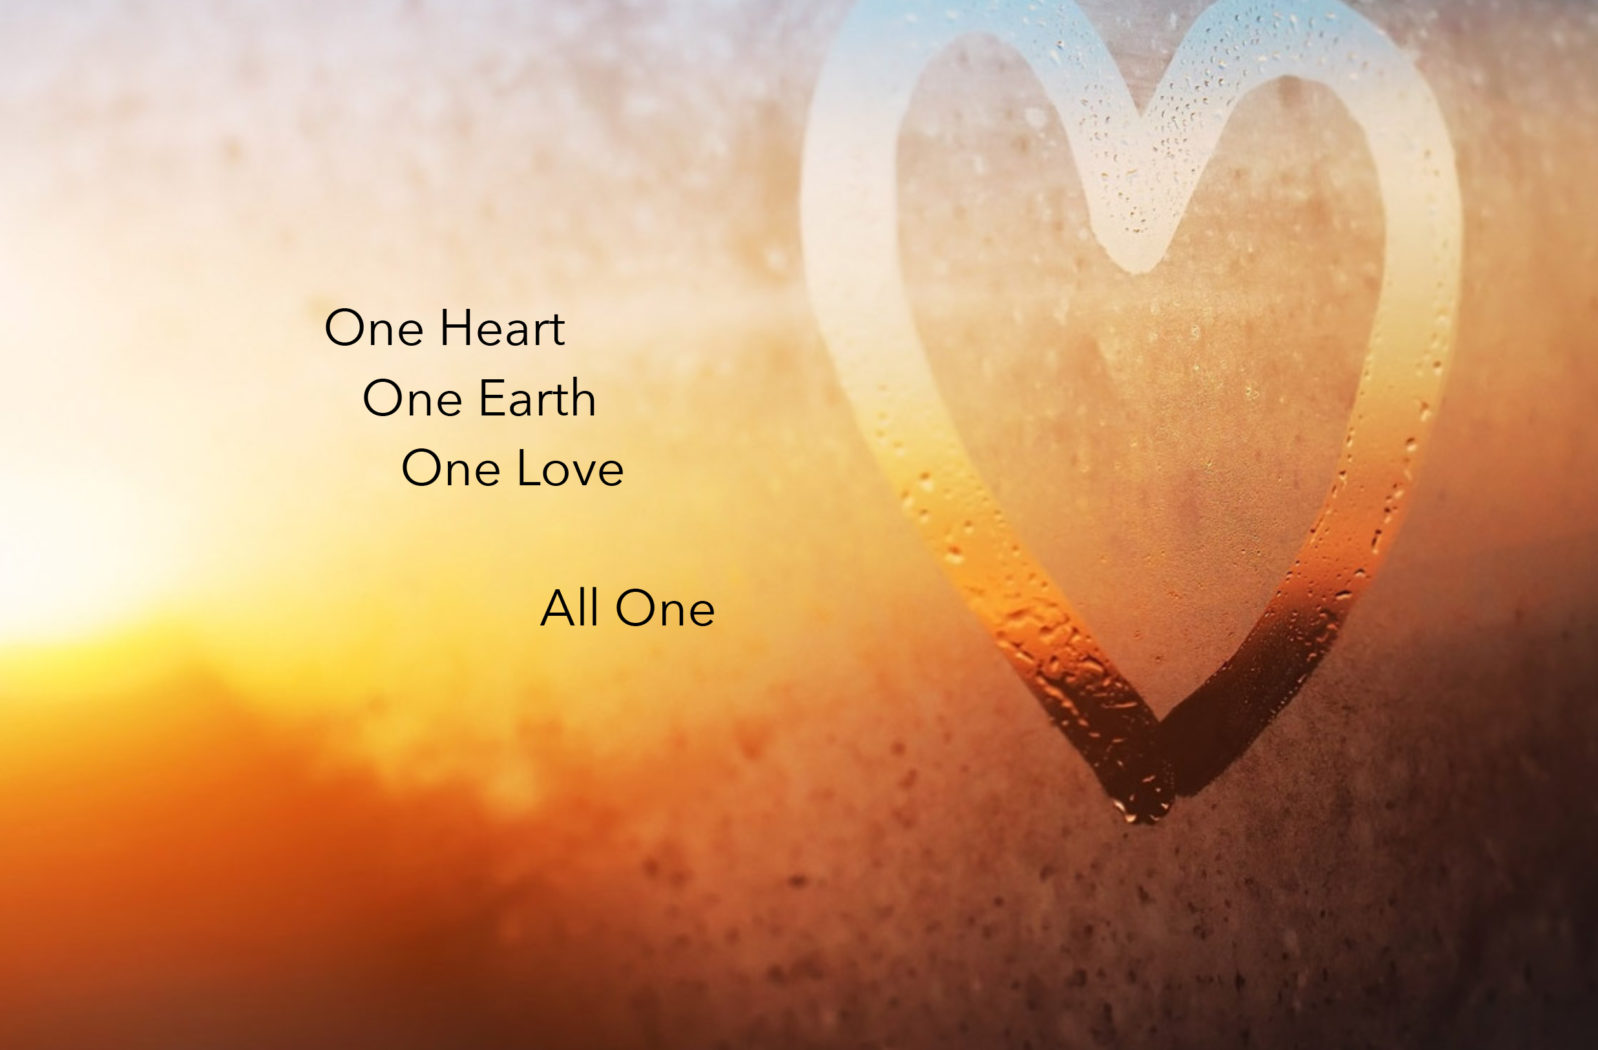 One Heart, One Earth, One Love